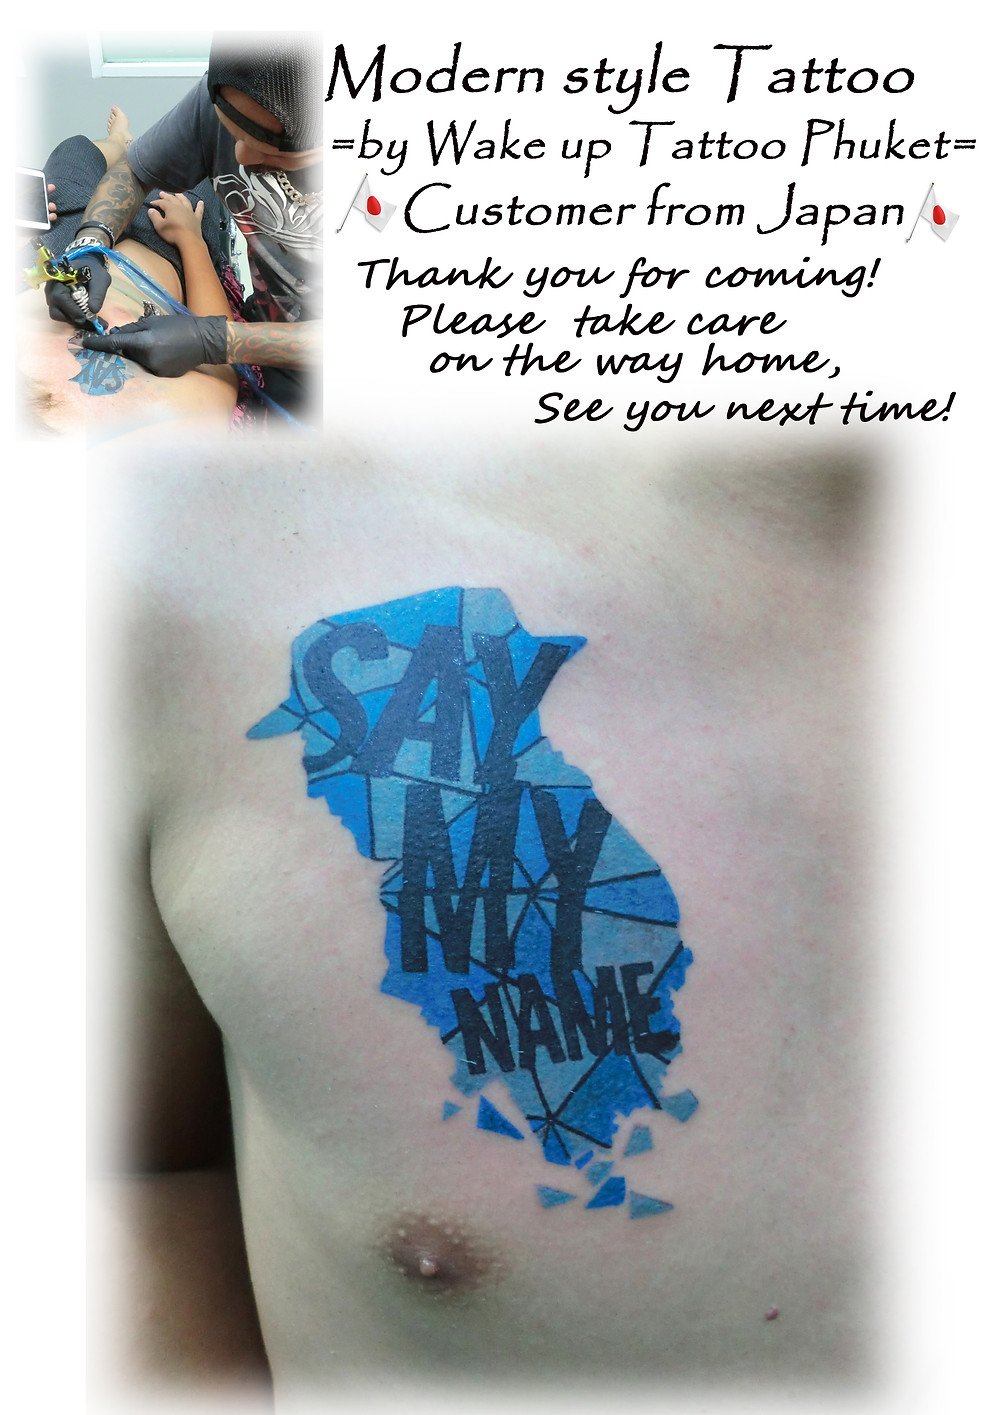 Best color inked by Wake up Tattoo Phuket